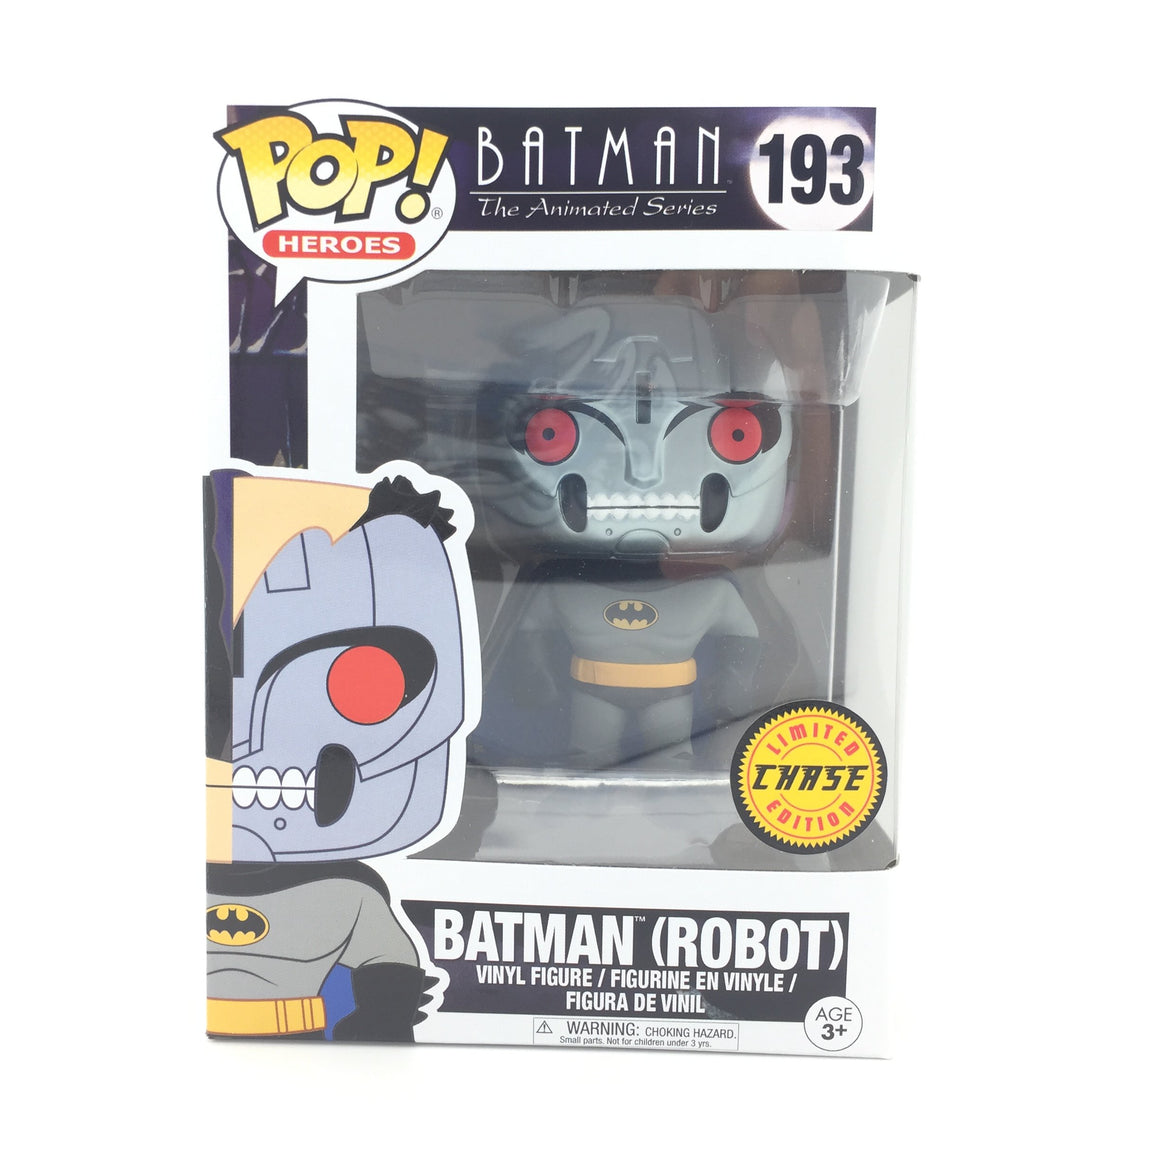 Batman Robot Chase POP! Vinyl Figure from Batman Animated Series by Funko